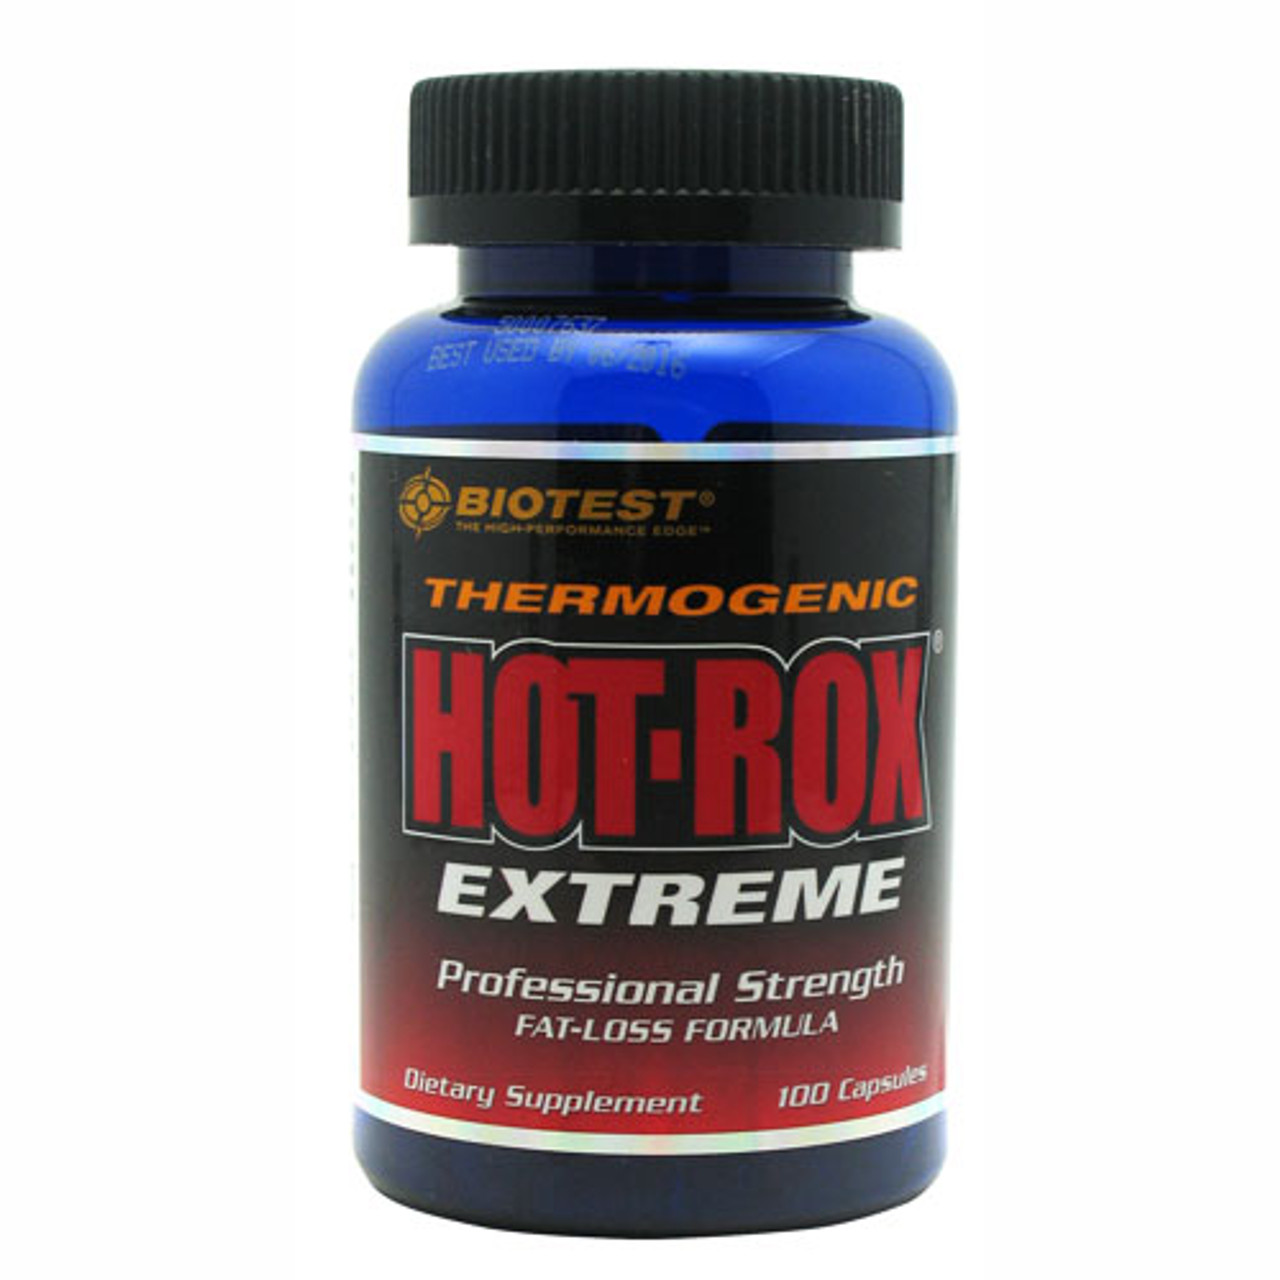 Hot-Rox Extreme (Biotest) 100ct